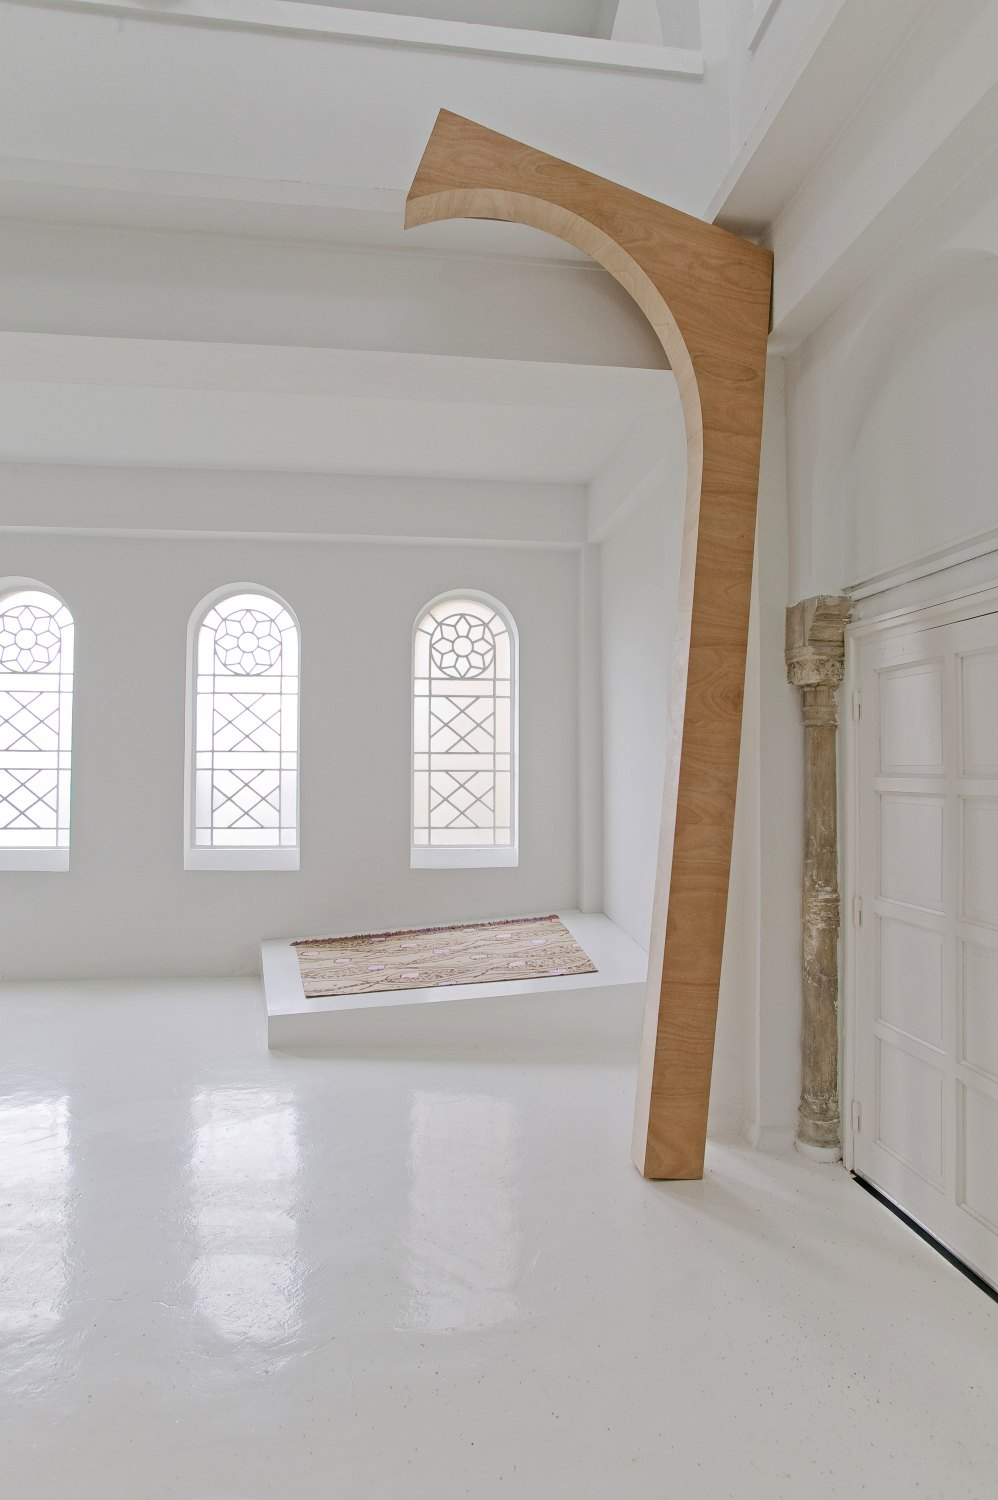 Marc Camille Chaimowicz Arch 2 (Delme), 2007 Untreated plywood, 430 × 151.1 × 15 cm